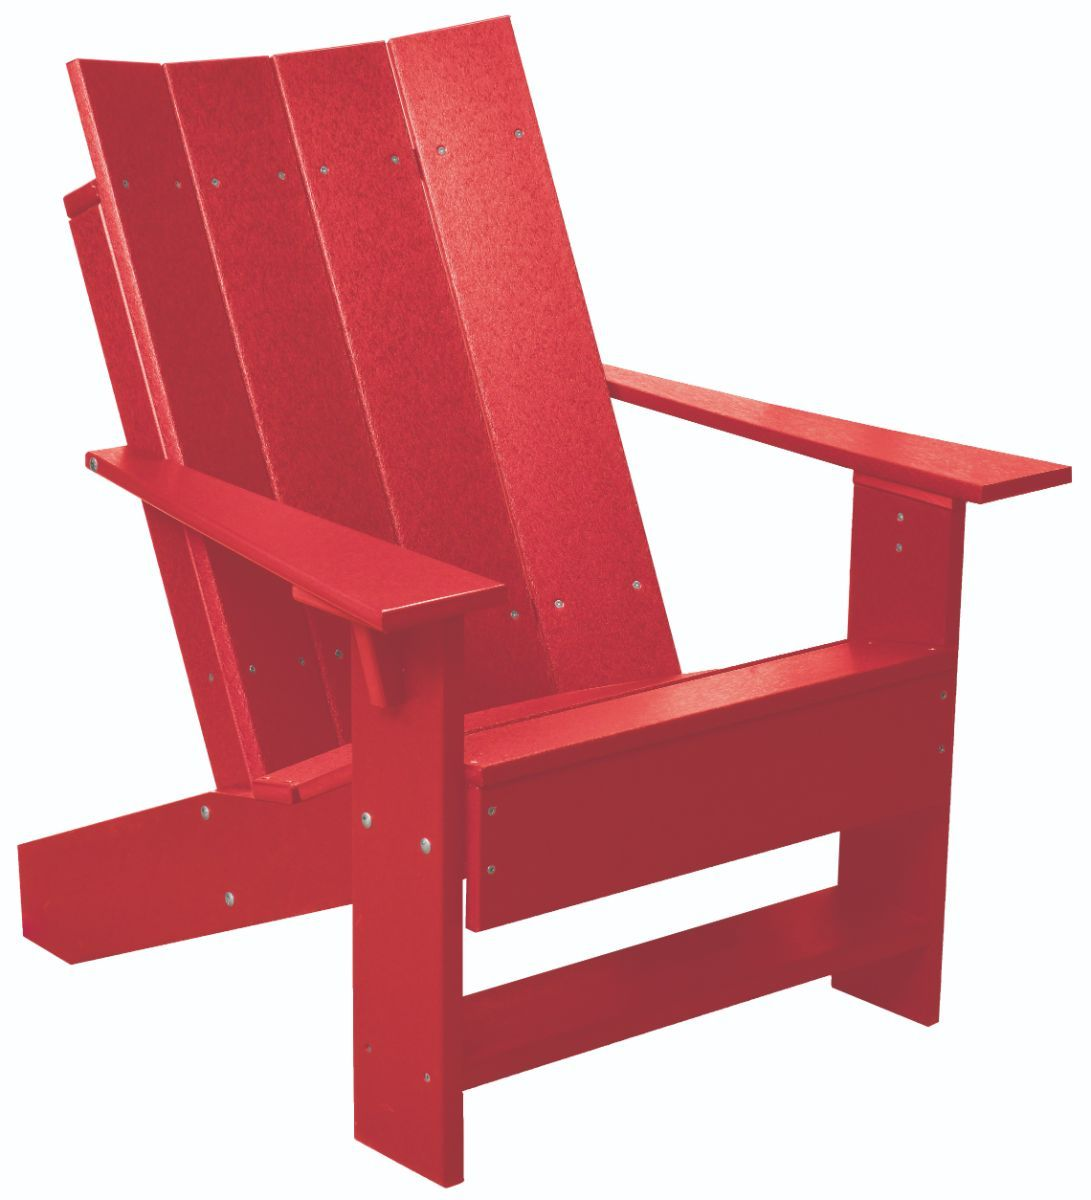 Bright Red Mindelo Adirondack Chair